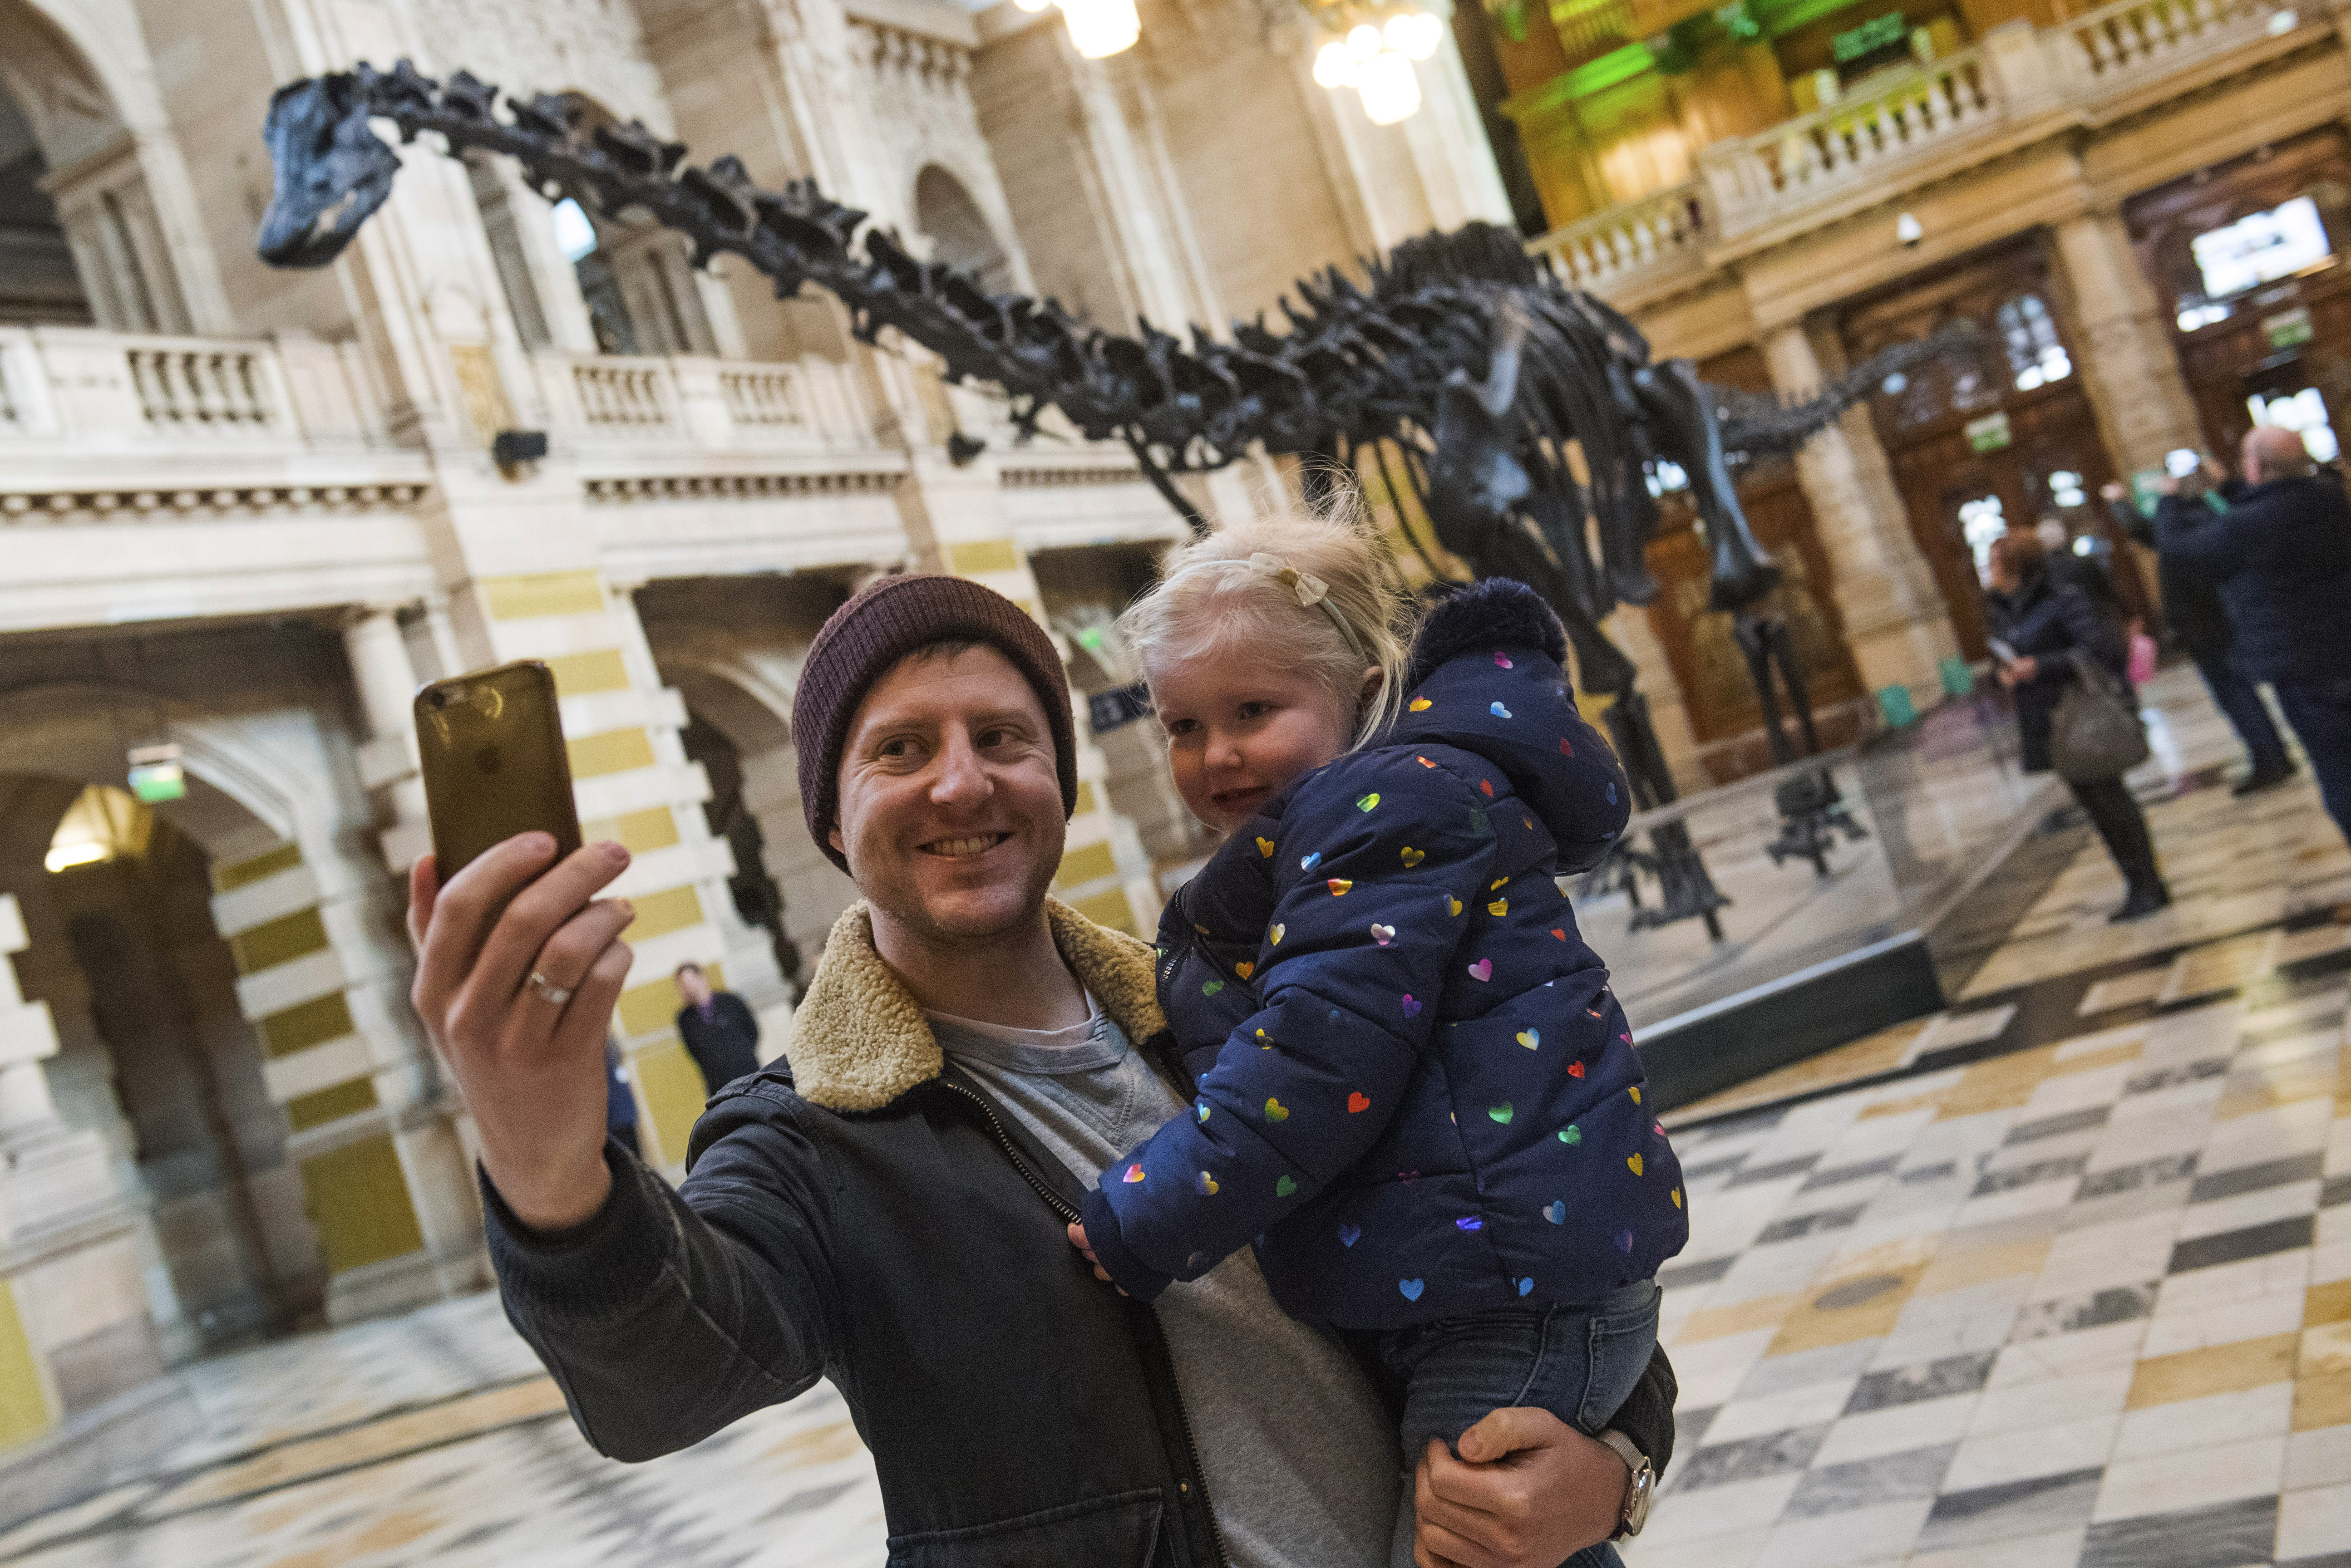 The famous Diplodocus is ready to meet Scottish audiences at Kelvingrove Art Gallery and Museum in Glasgow (SNS Group / Gary Hutchison)